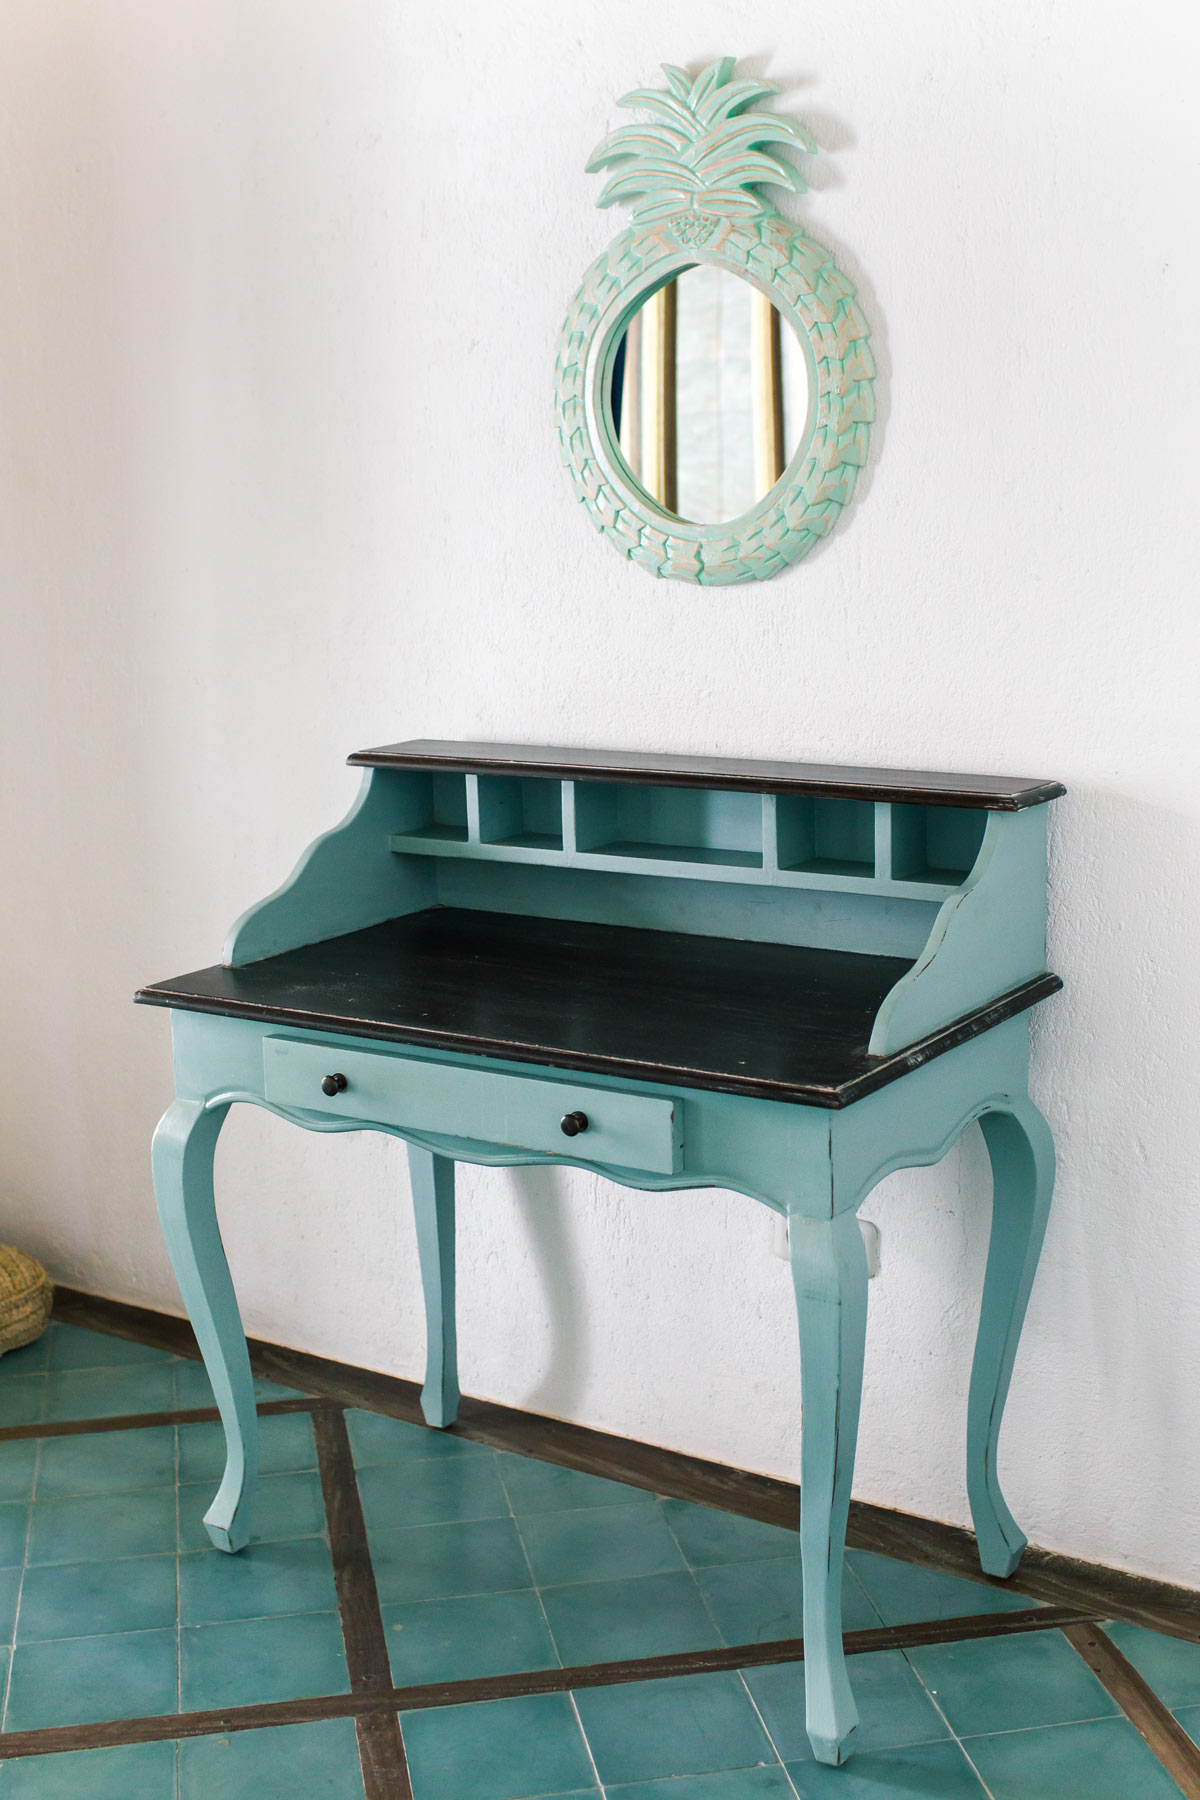 Mobile dipinto fai da te color blu stile shabby chic.